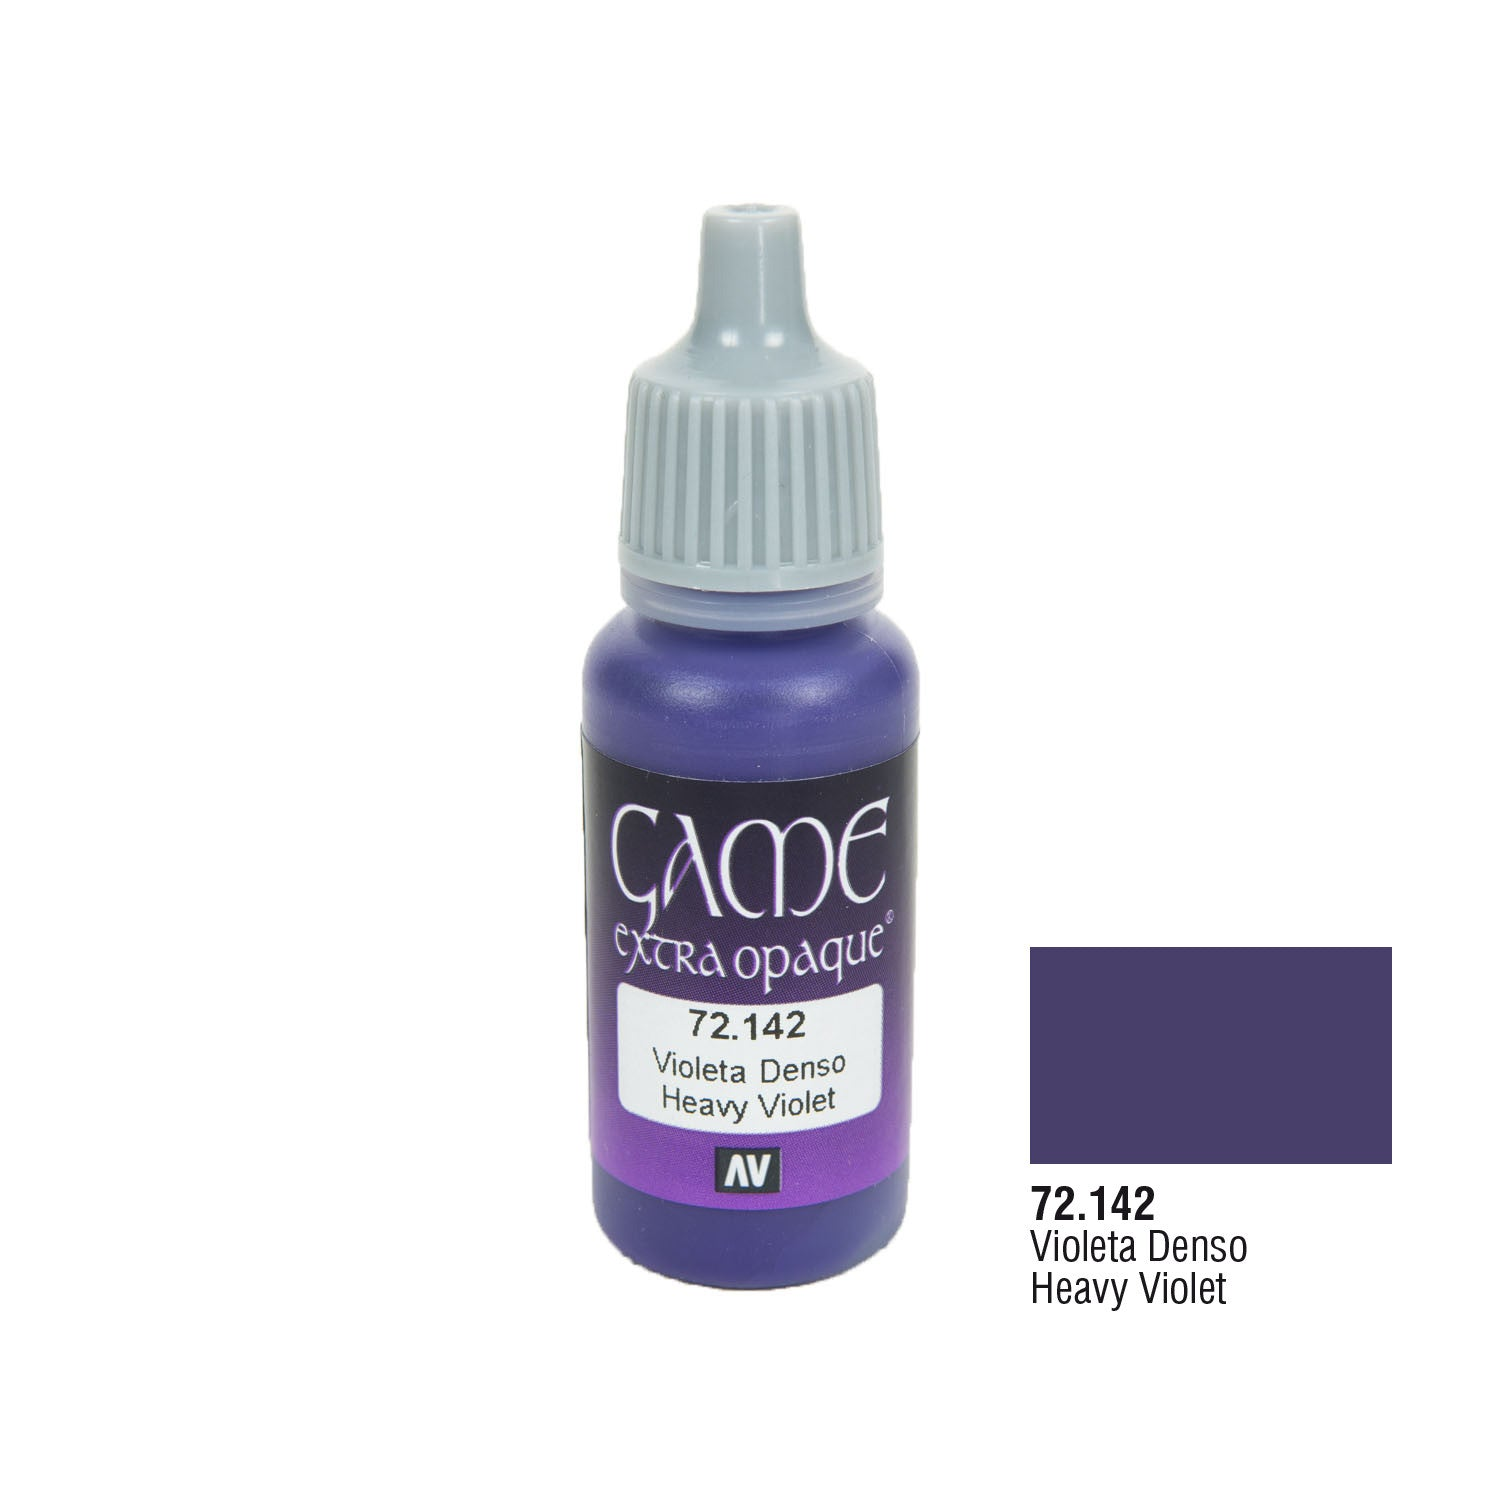 Vallejo 72.142 Game Extra Opaque: Heavy Violet, 17ml